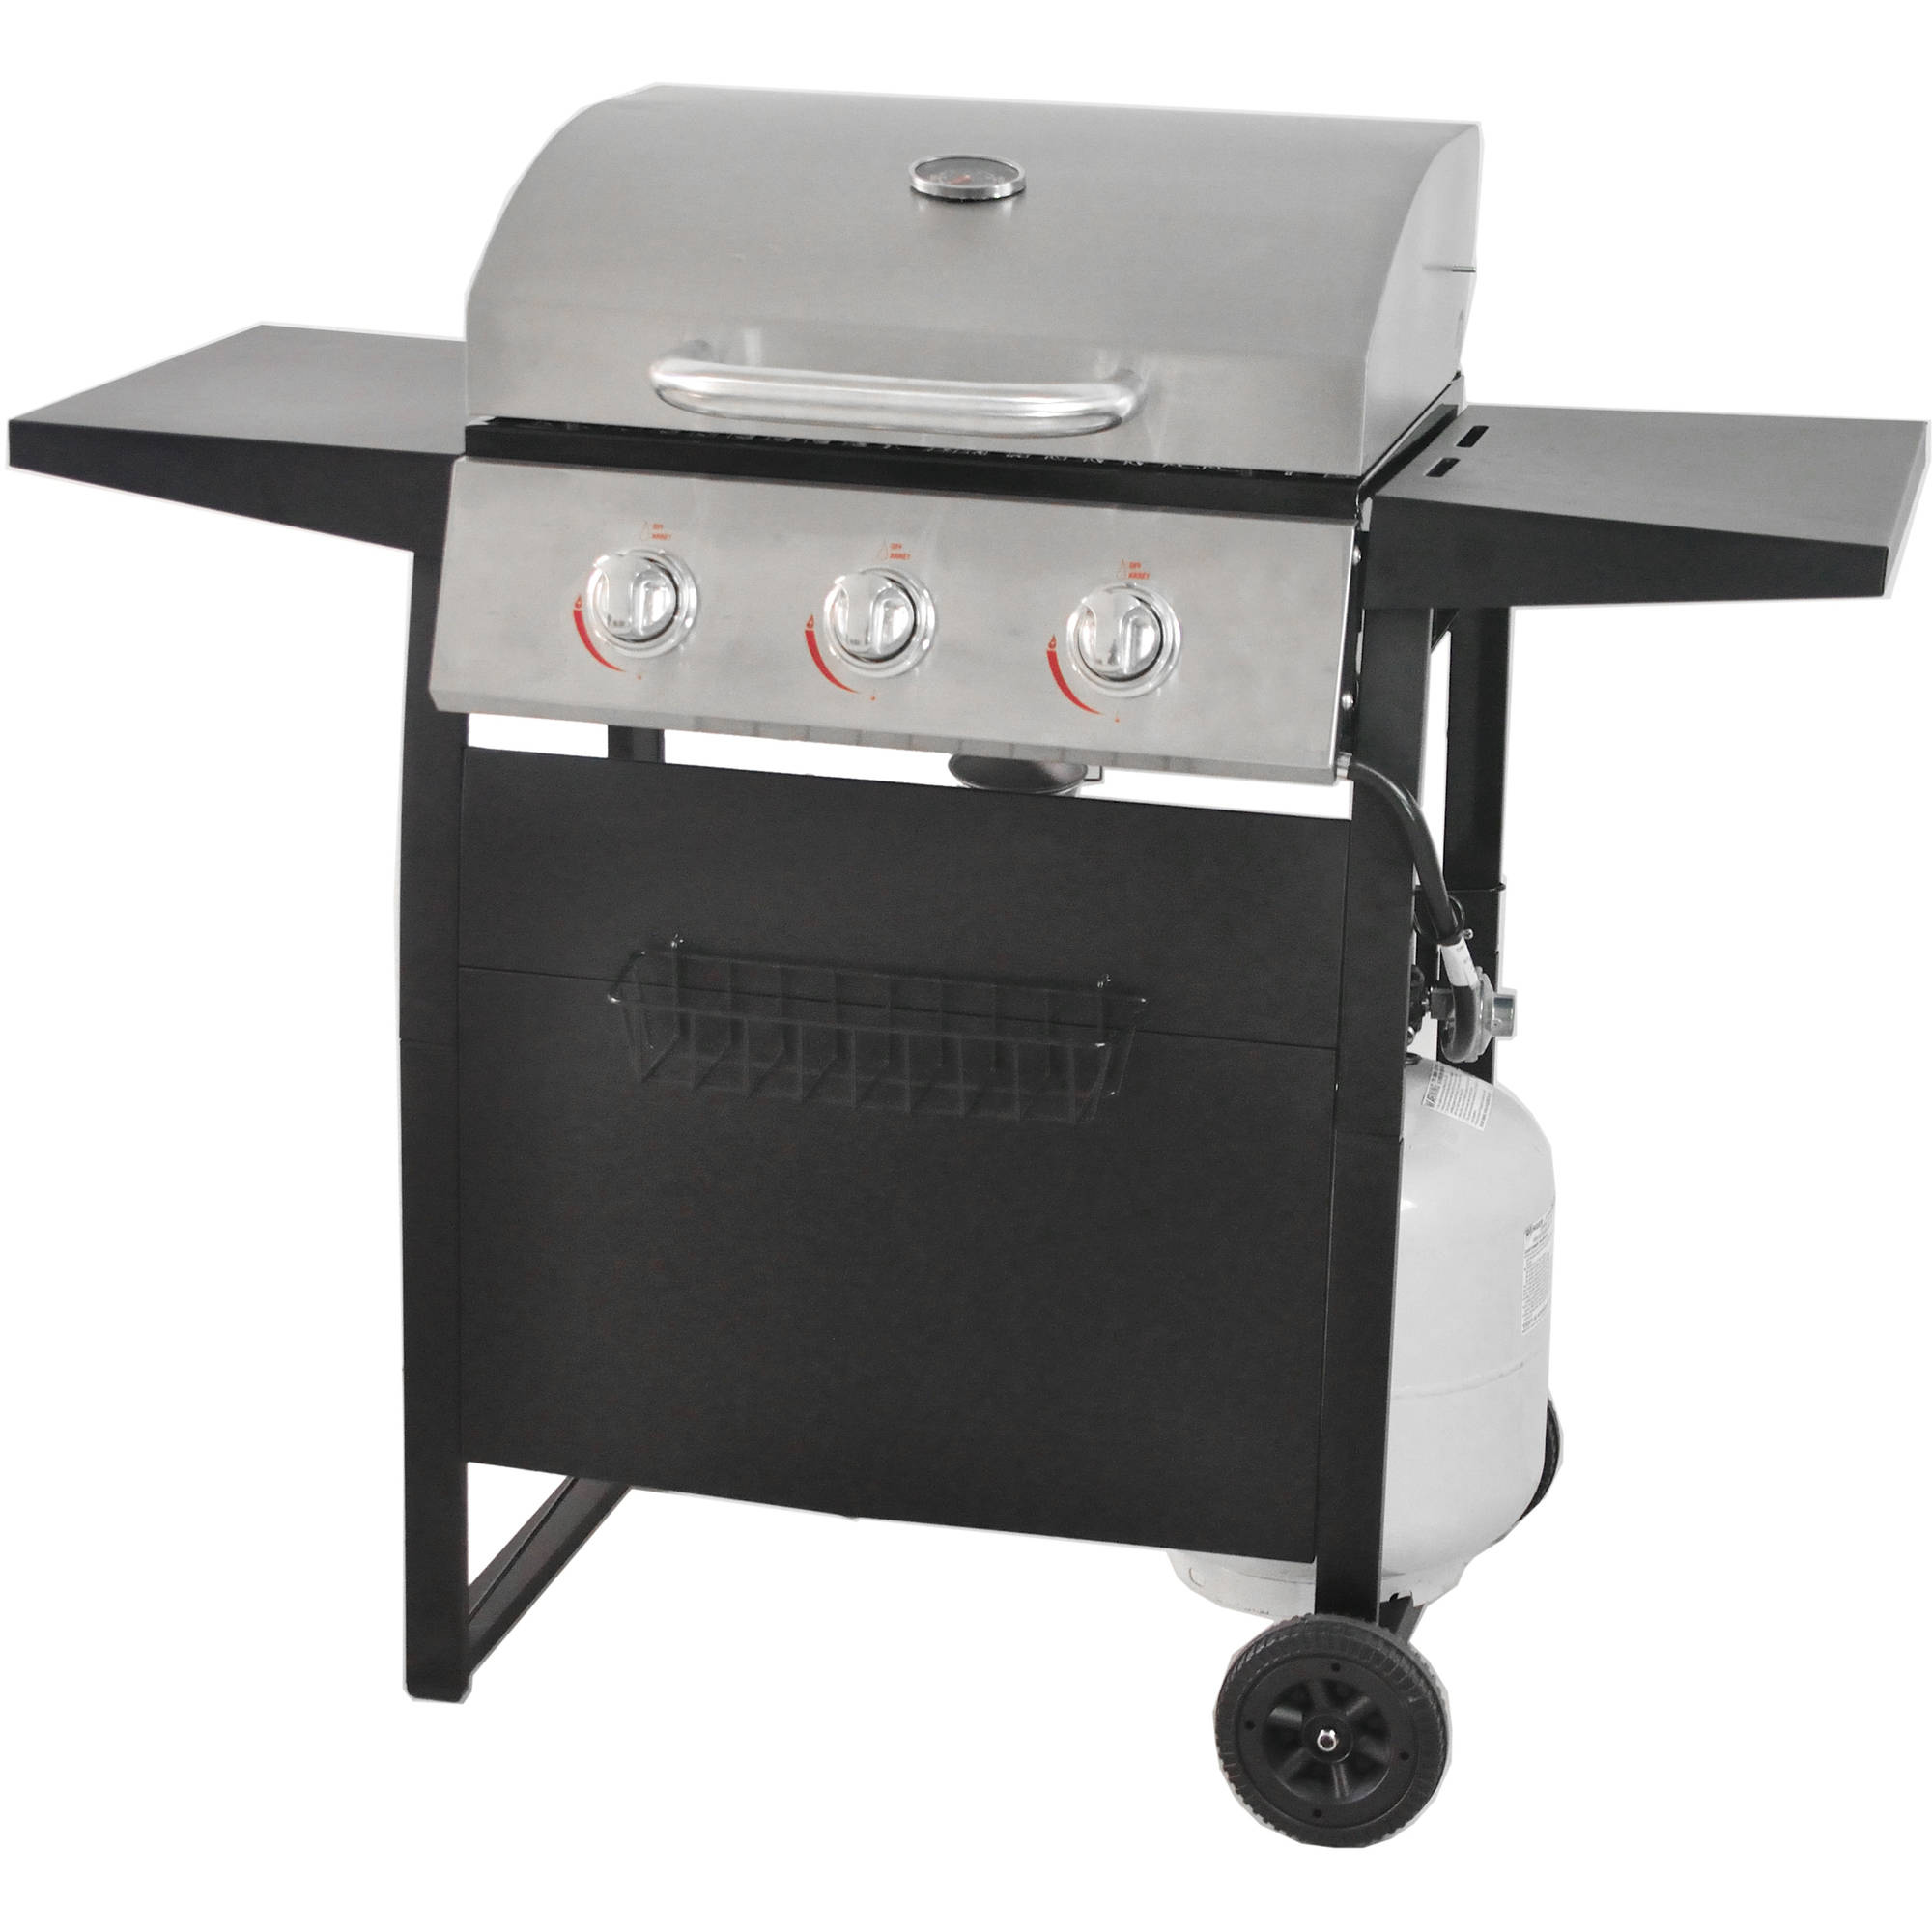 RevoAce 3-Burner LP Gas Grill with Stainless Steel